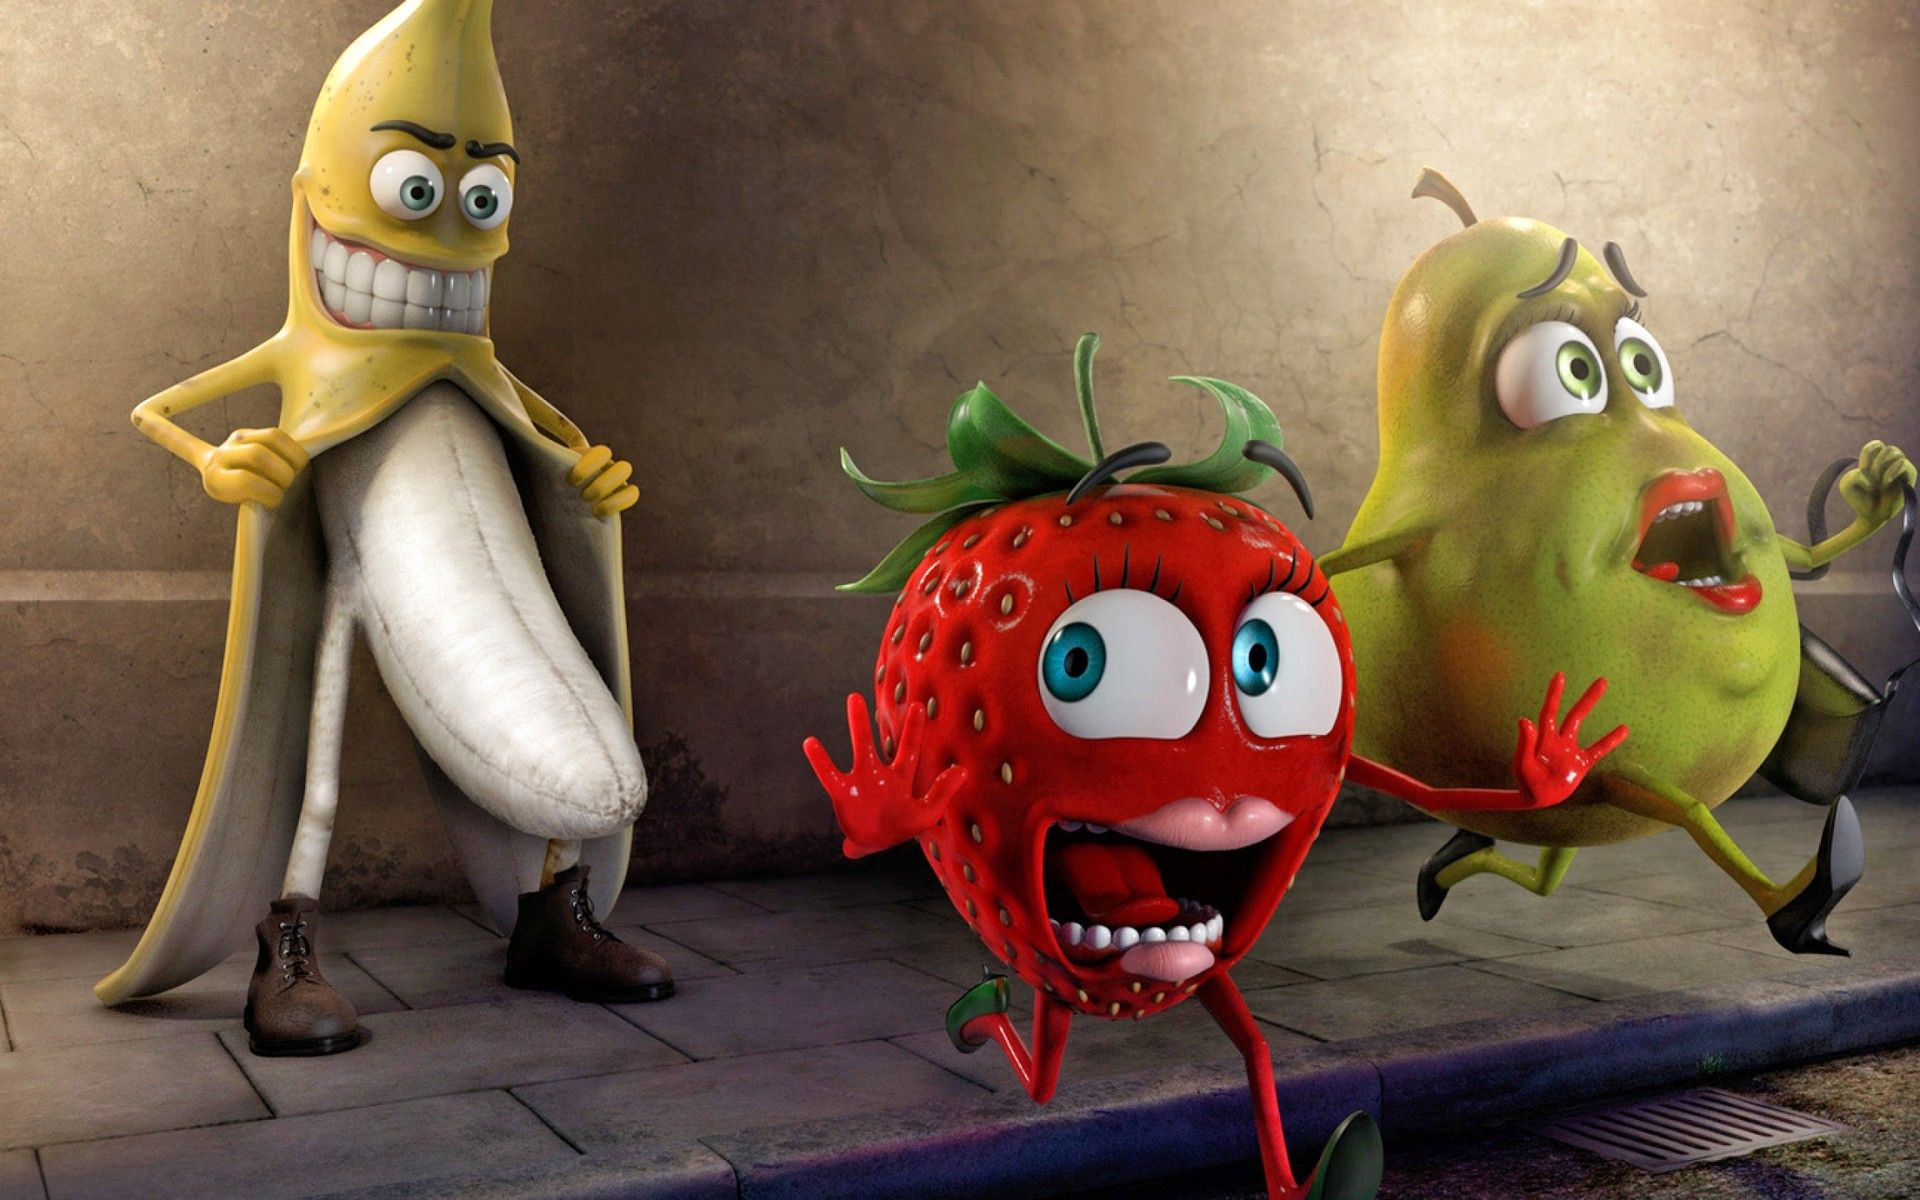 Love Bananas Strawberries 1920x1200 Wallpaper Funny Fruit Funny Wallpapers Funny Images